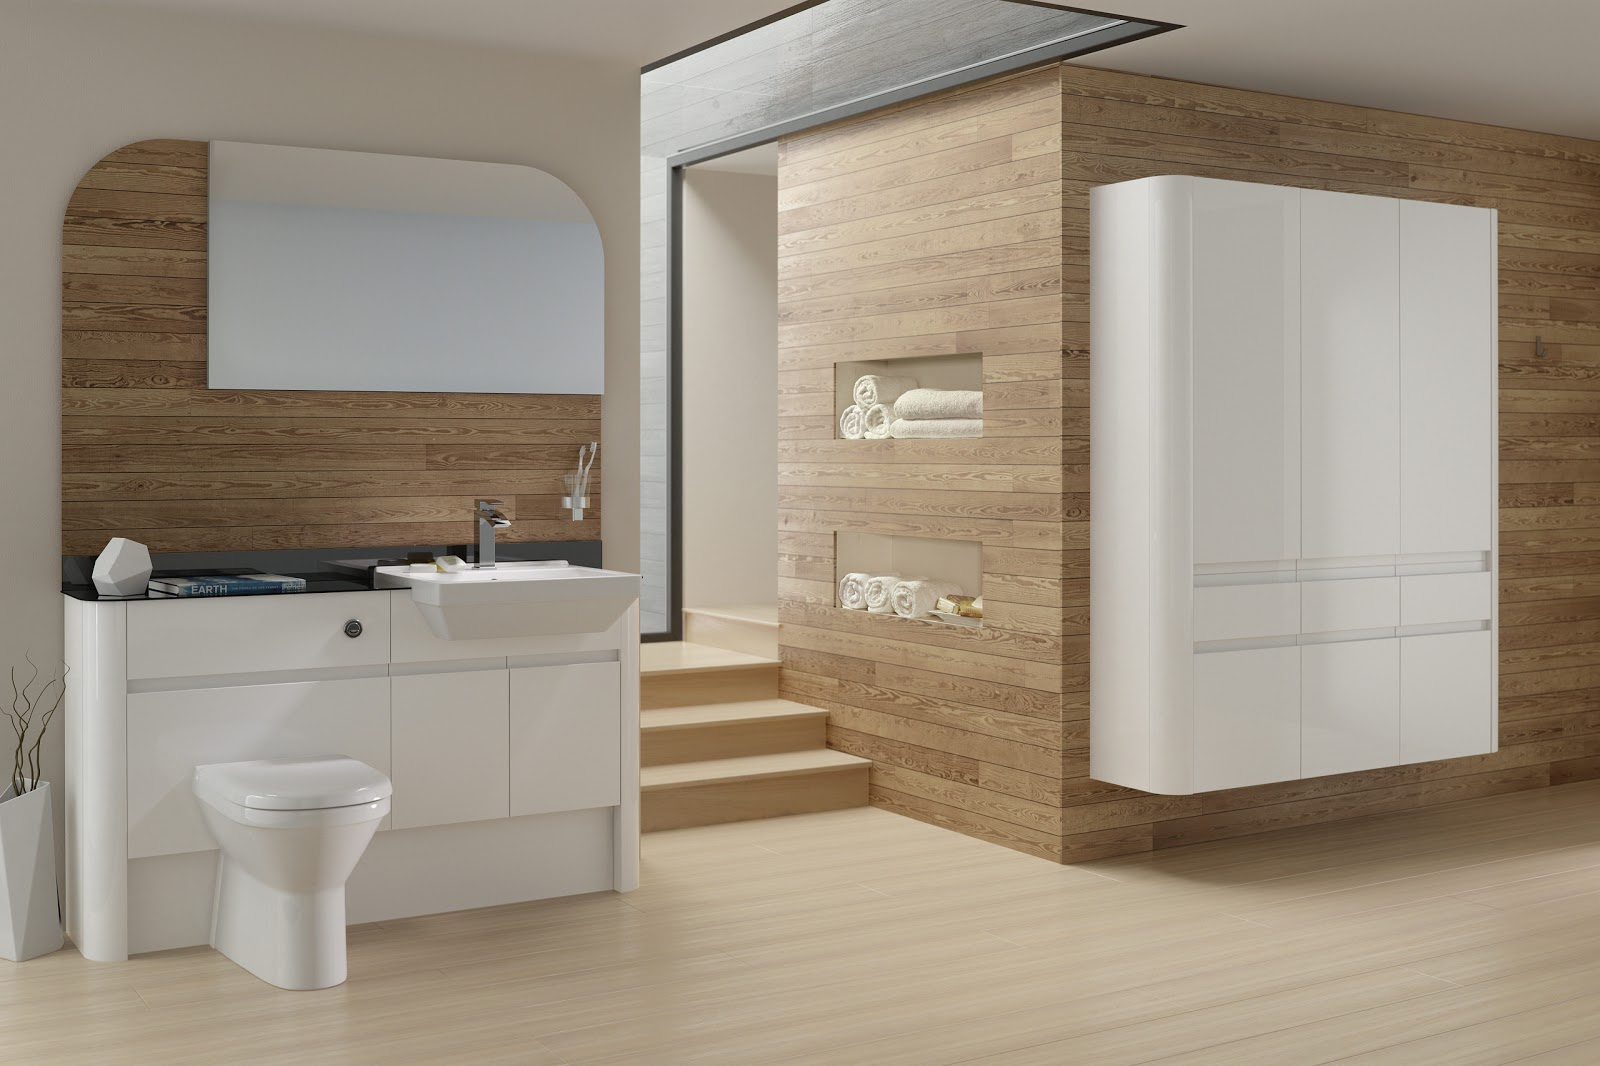 Model Handleless Bathroom Furniture  Puntotre Arredobagno